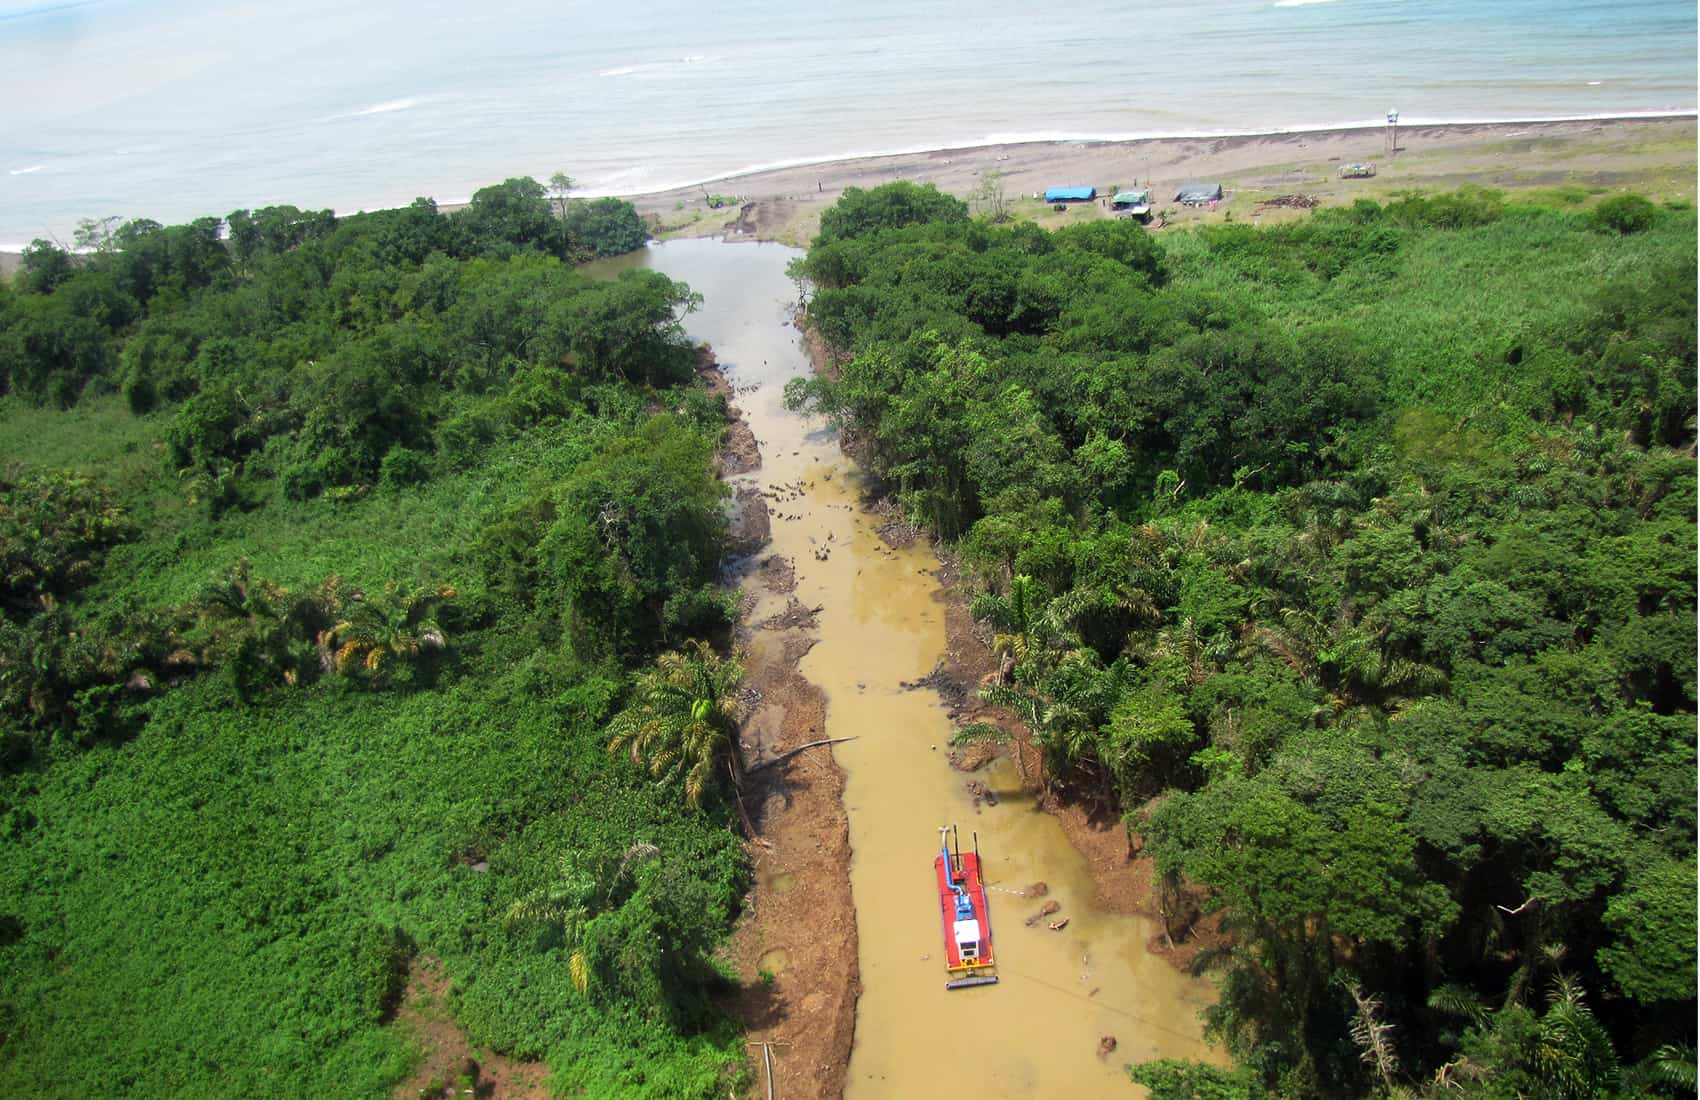 Artificial canals at Costa Rica's border territory